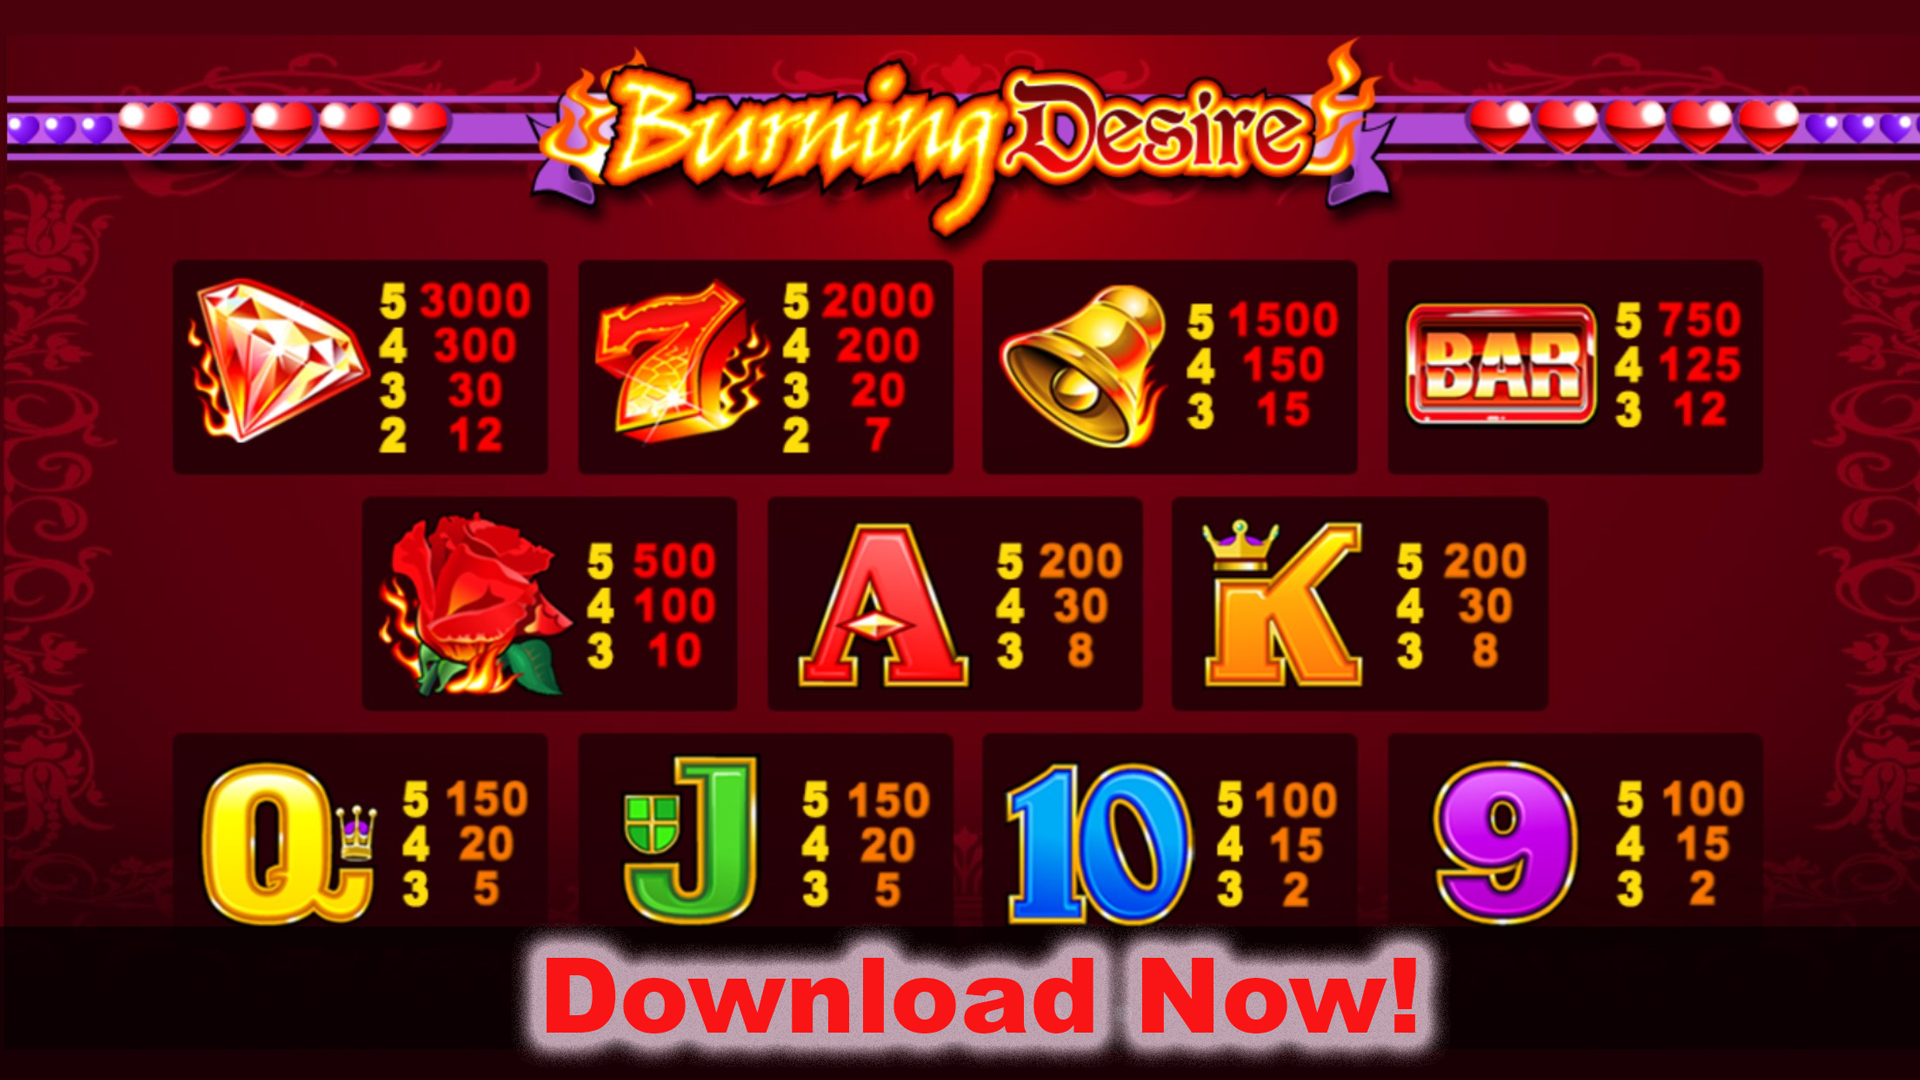 Burning Desire slot will satisfy your desire at Casumo